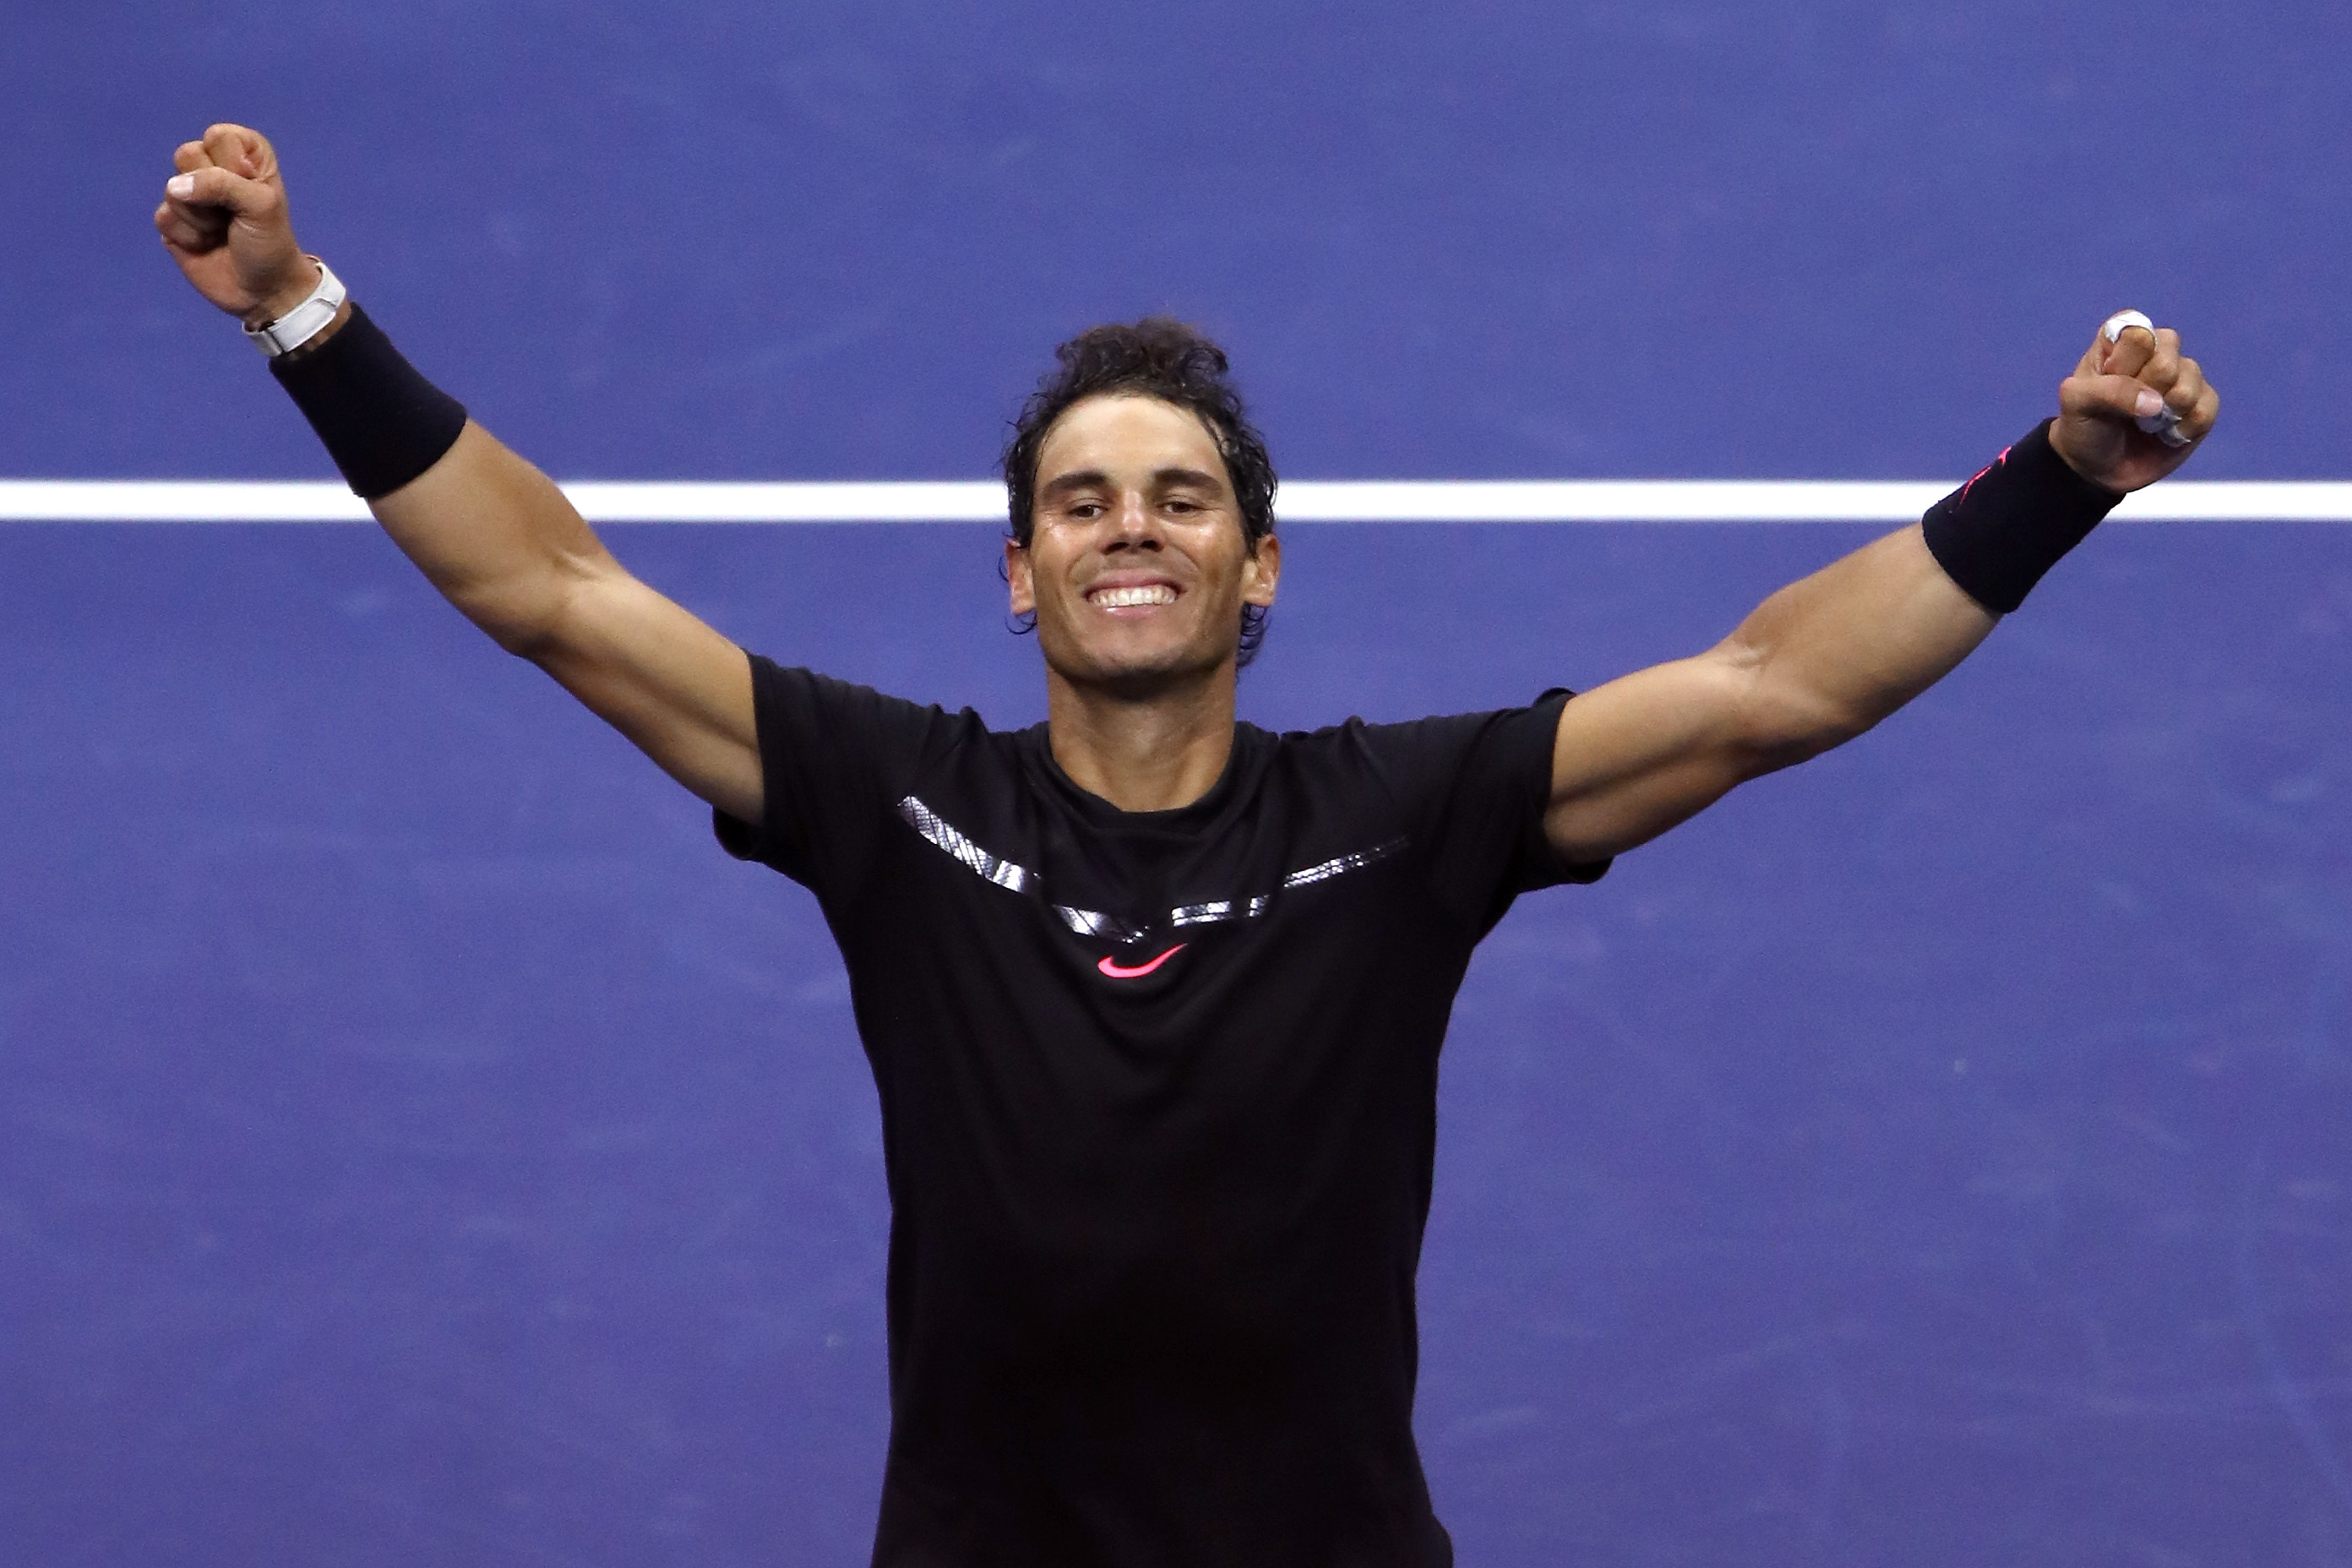 Rafael Nadal Beats Kevin Anderson In Final To Win 2017 Us Open Title Bleacher Report Latest News Videos And Highlights